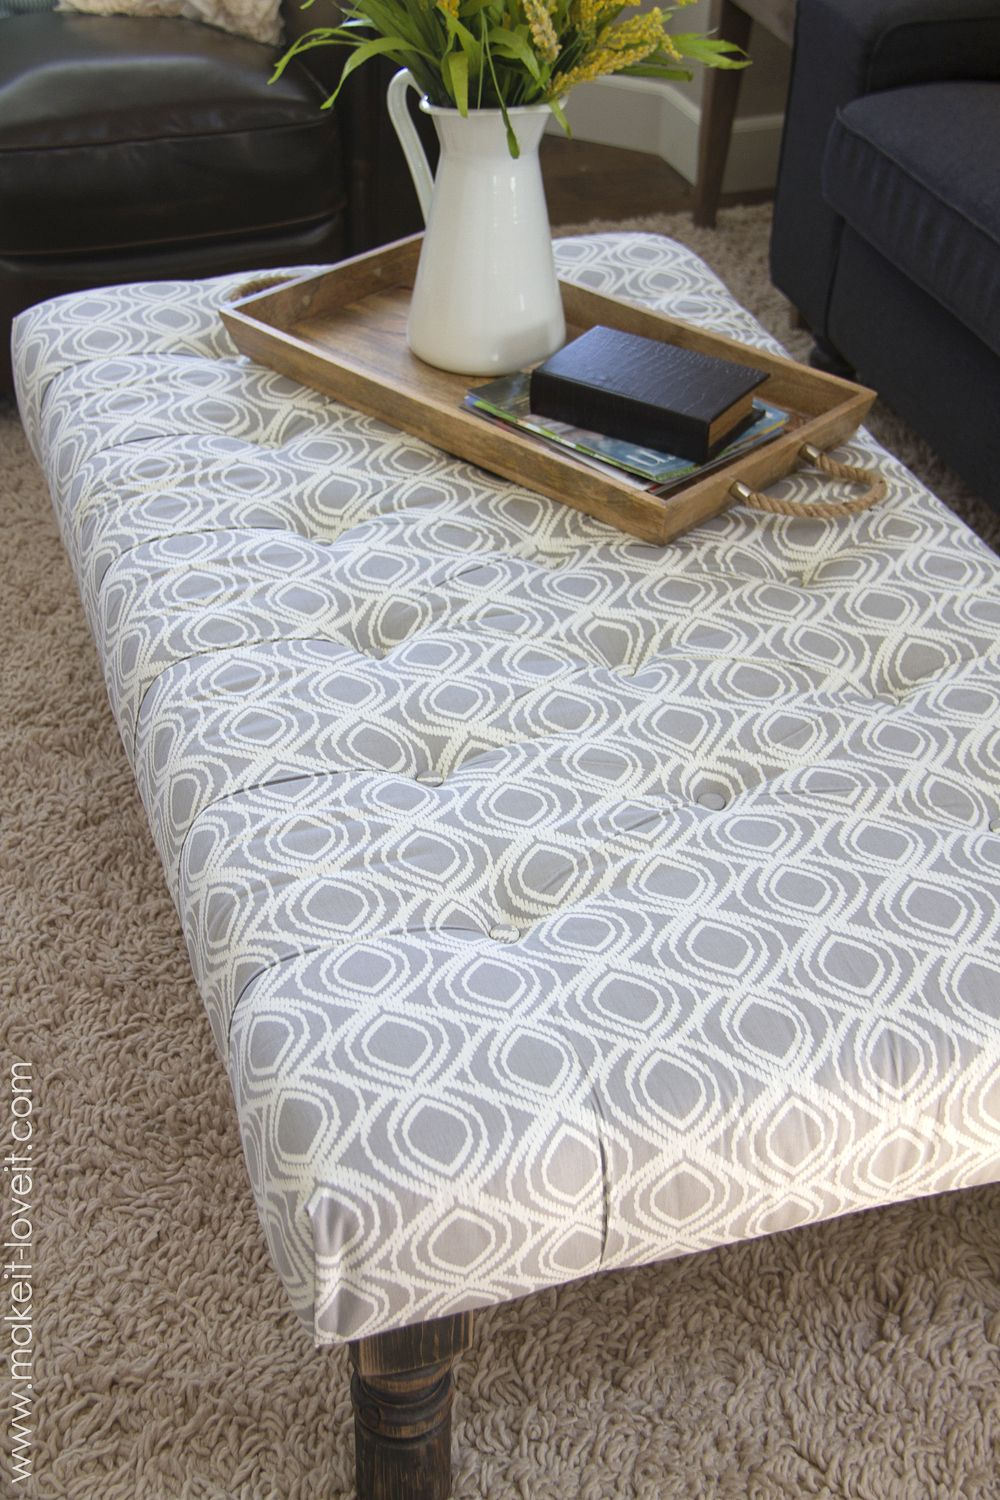 DIY Tufted Fabric Ottoman ((…from an old table)) Diy